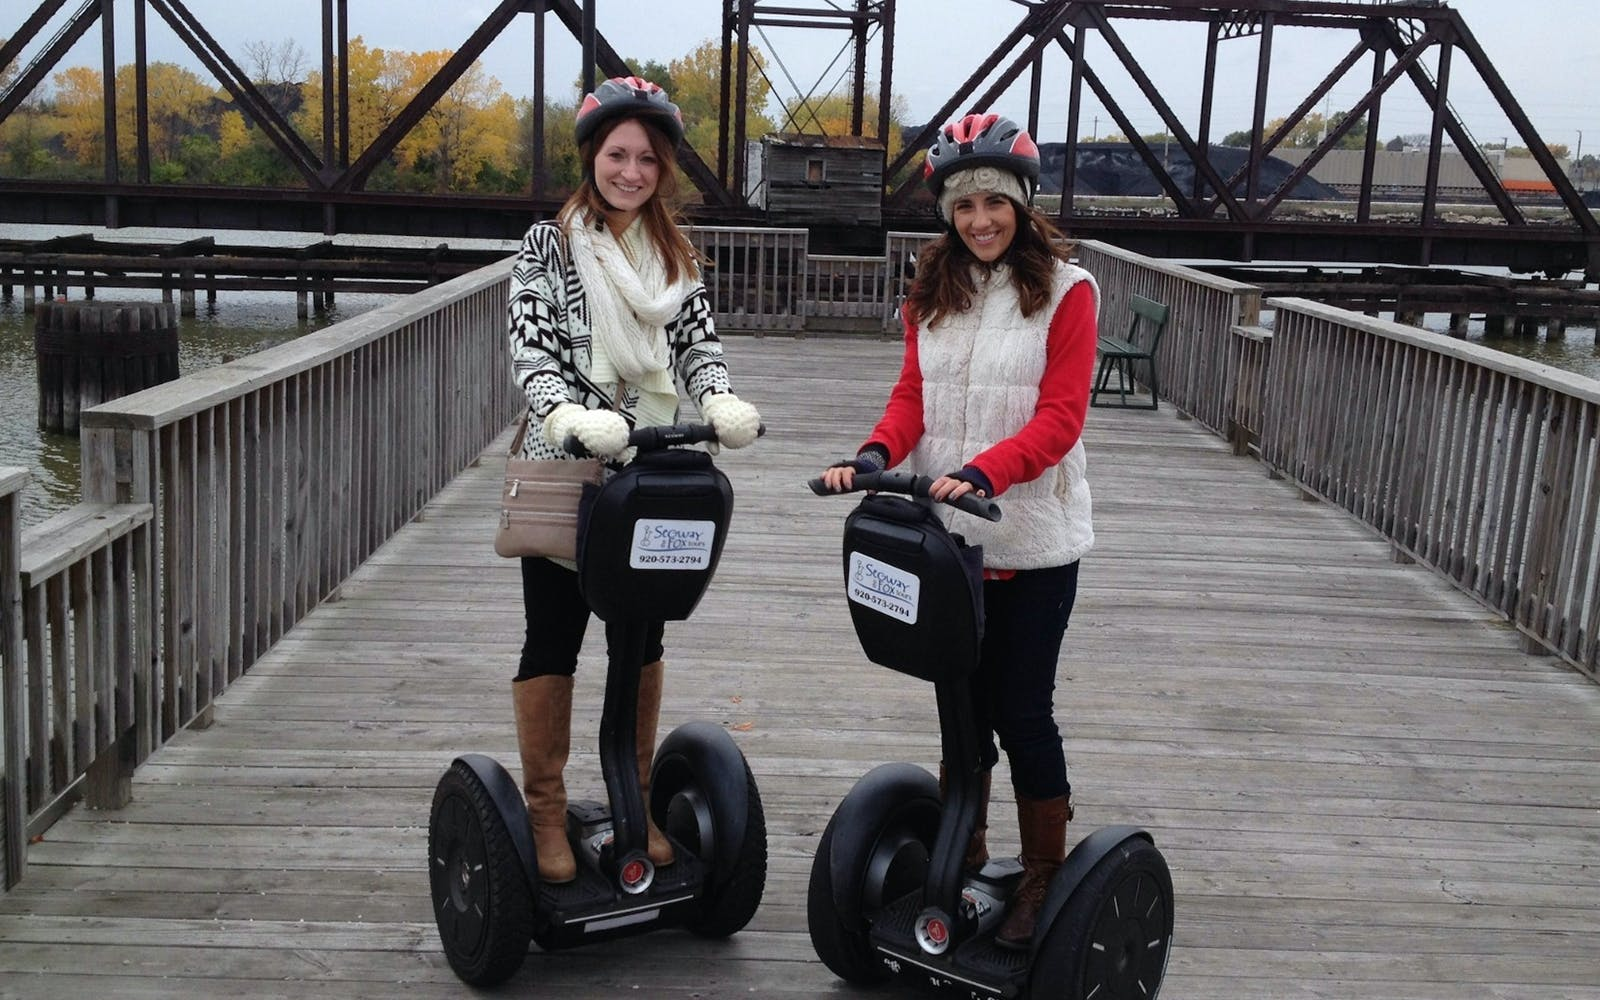 Golden Gate Segway Tours